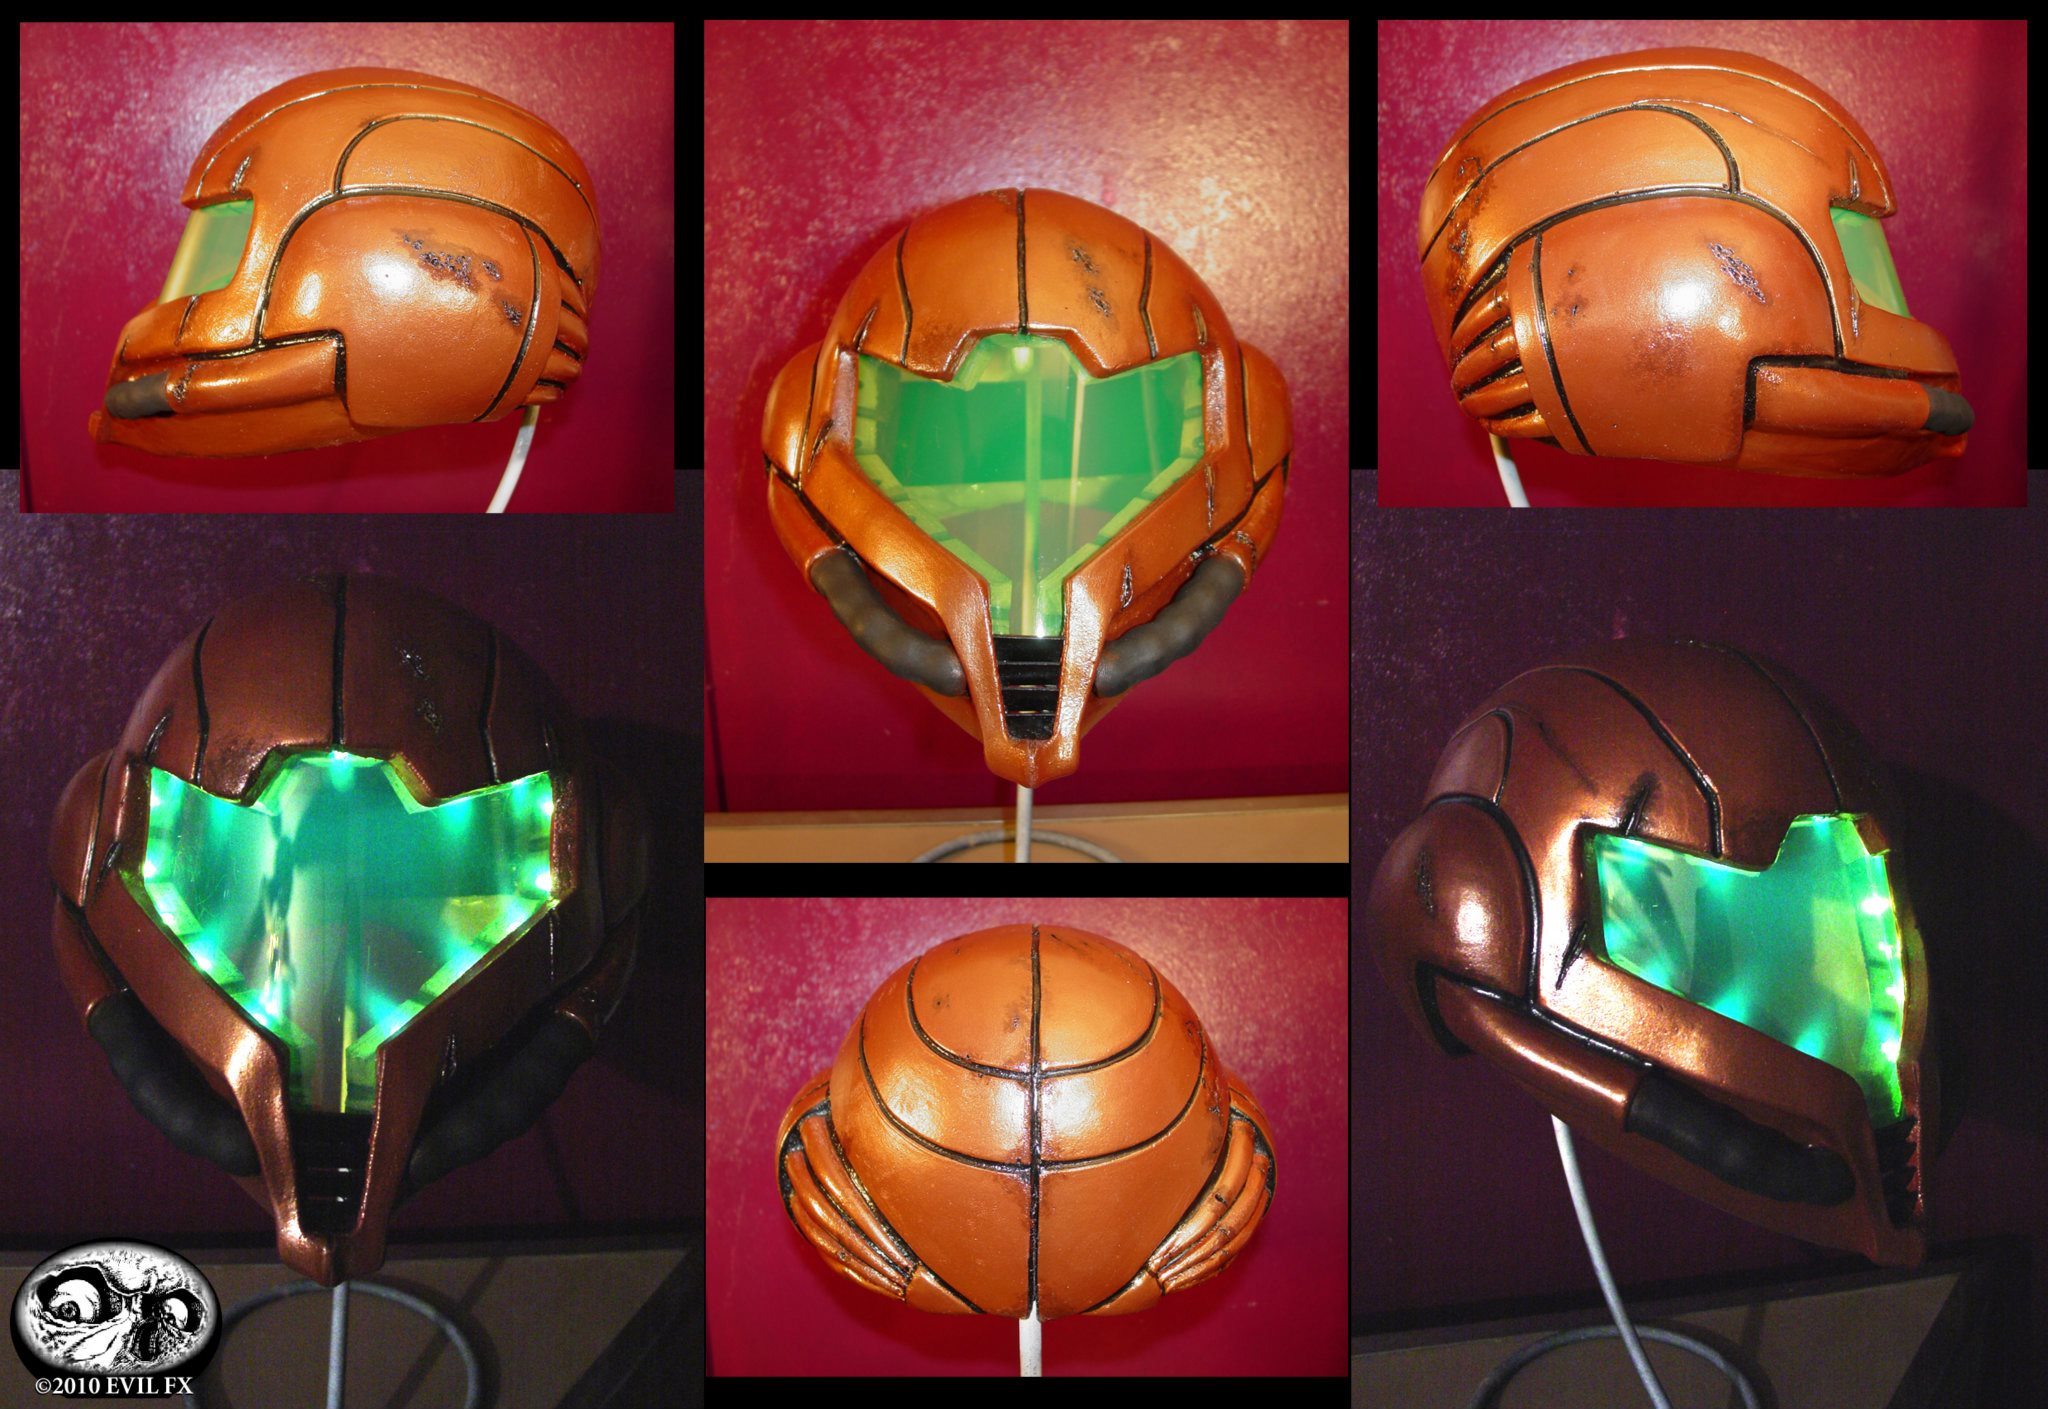 Metroid Battle Damaged helmet